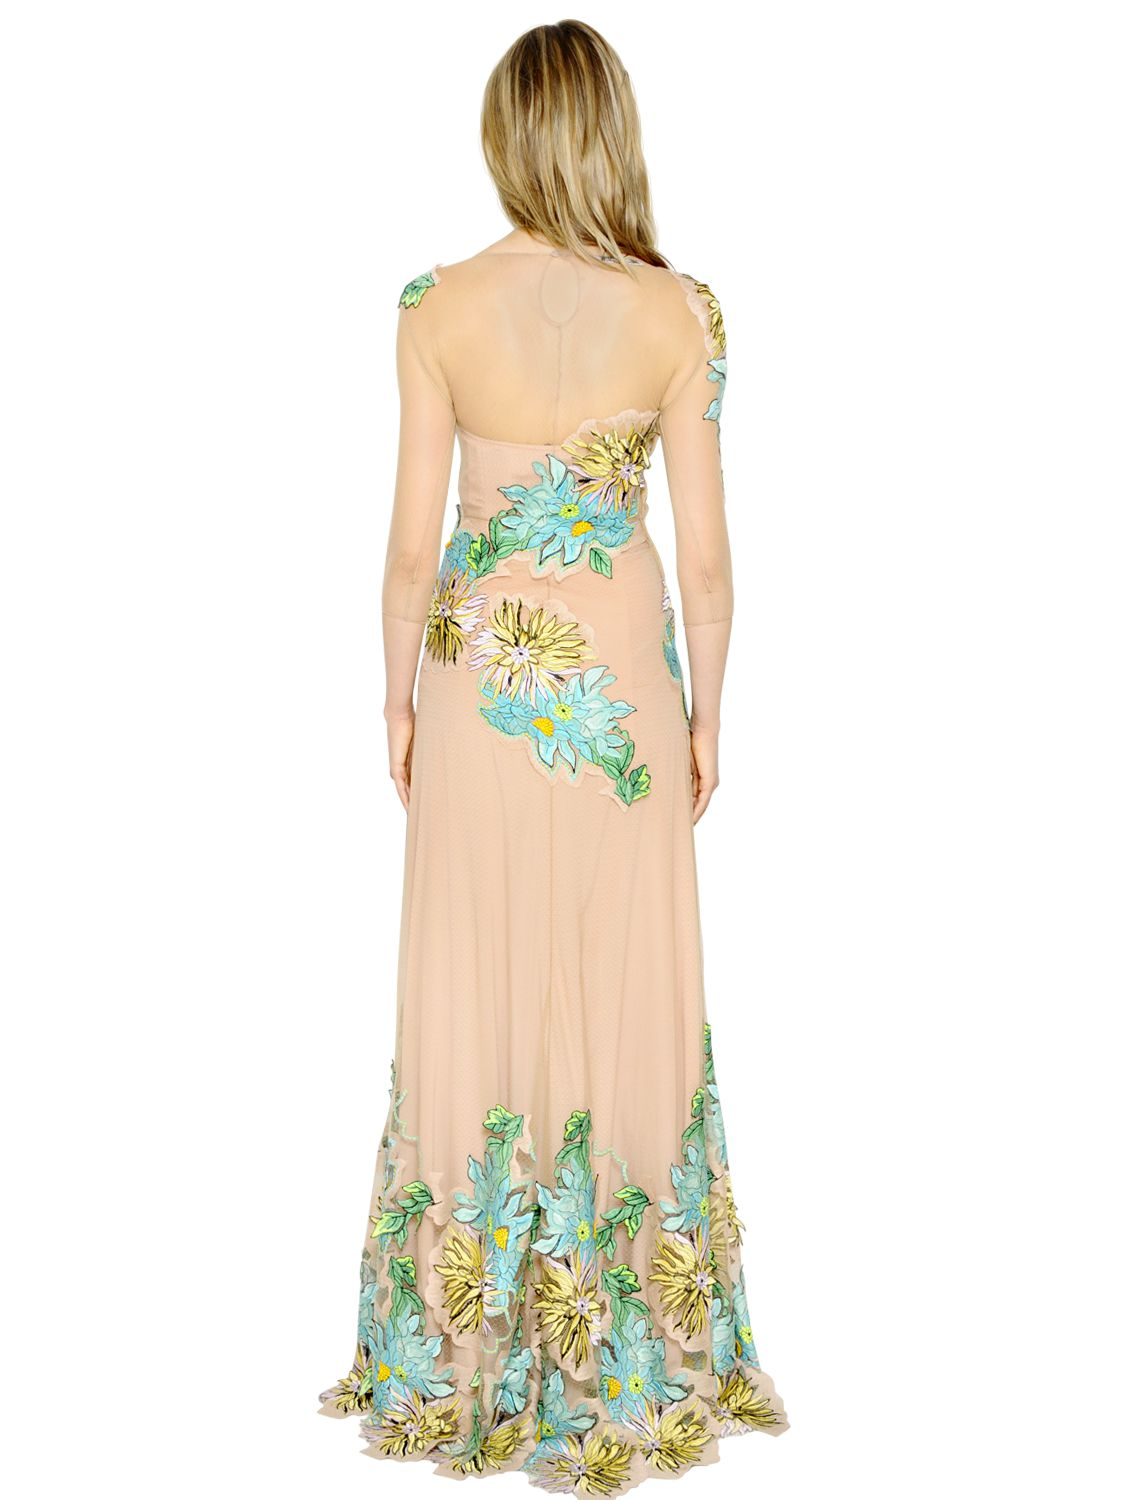 Lyst blumarine floral embroidered tulle dress in pink